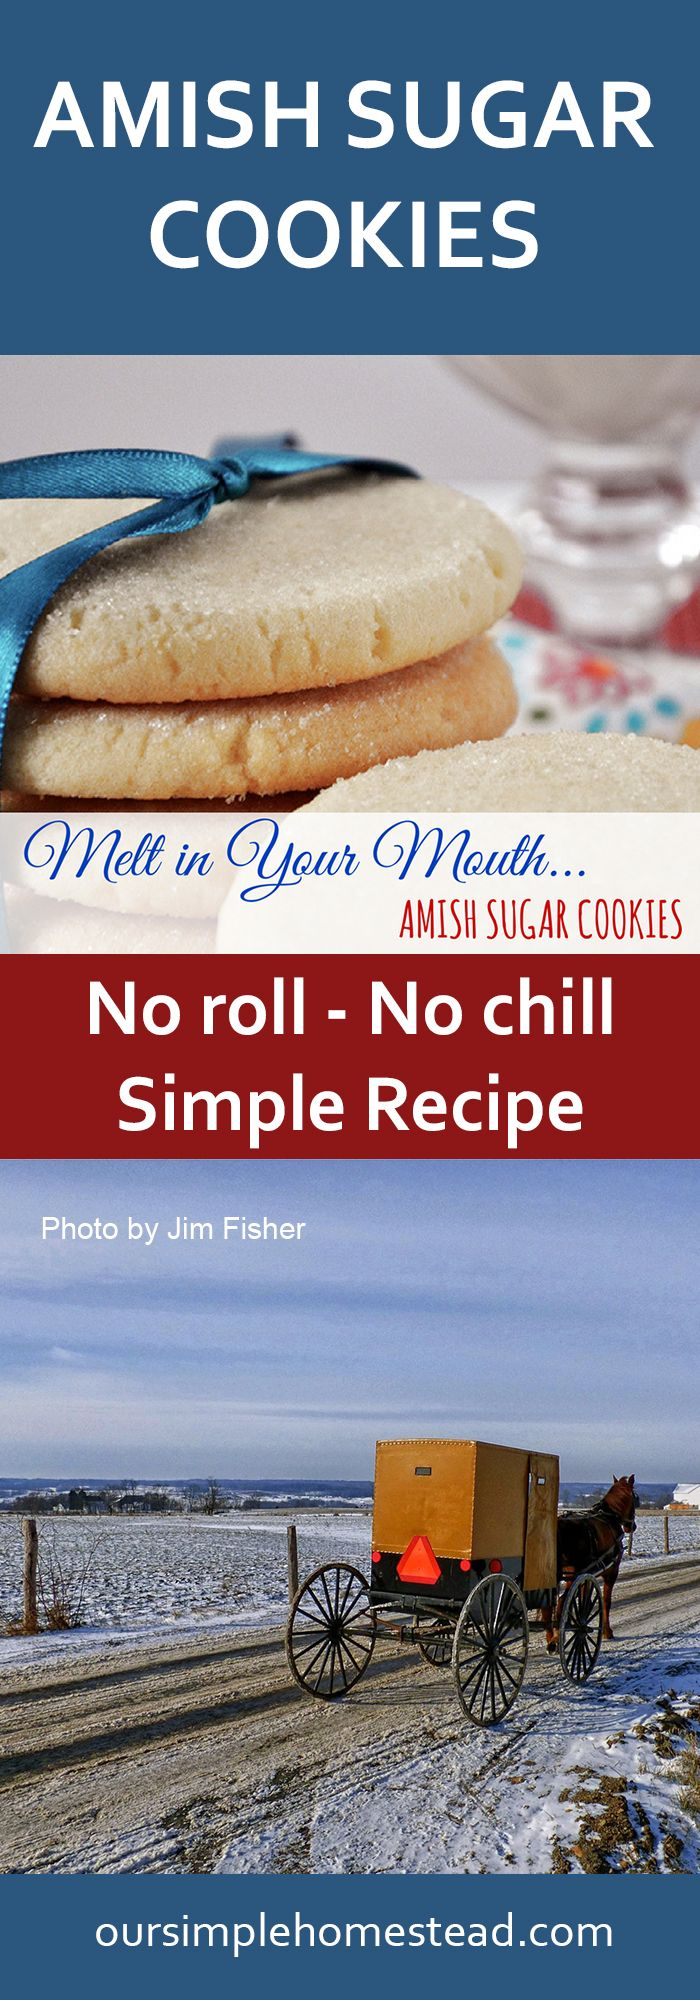 Amish Sugar Cookies - There aren't many sugar cookies I say don't need frosting but these are an exception to that rule. These super simple no roll, no chill Amish Sugar Cookies are perfect for any occasion